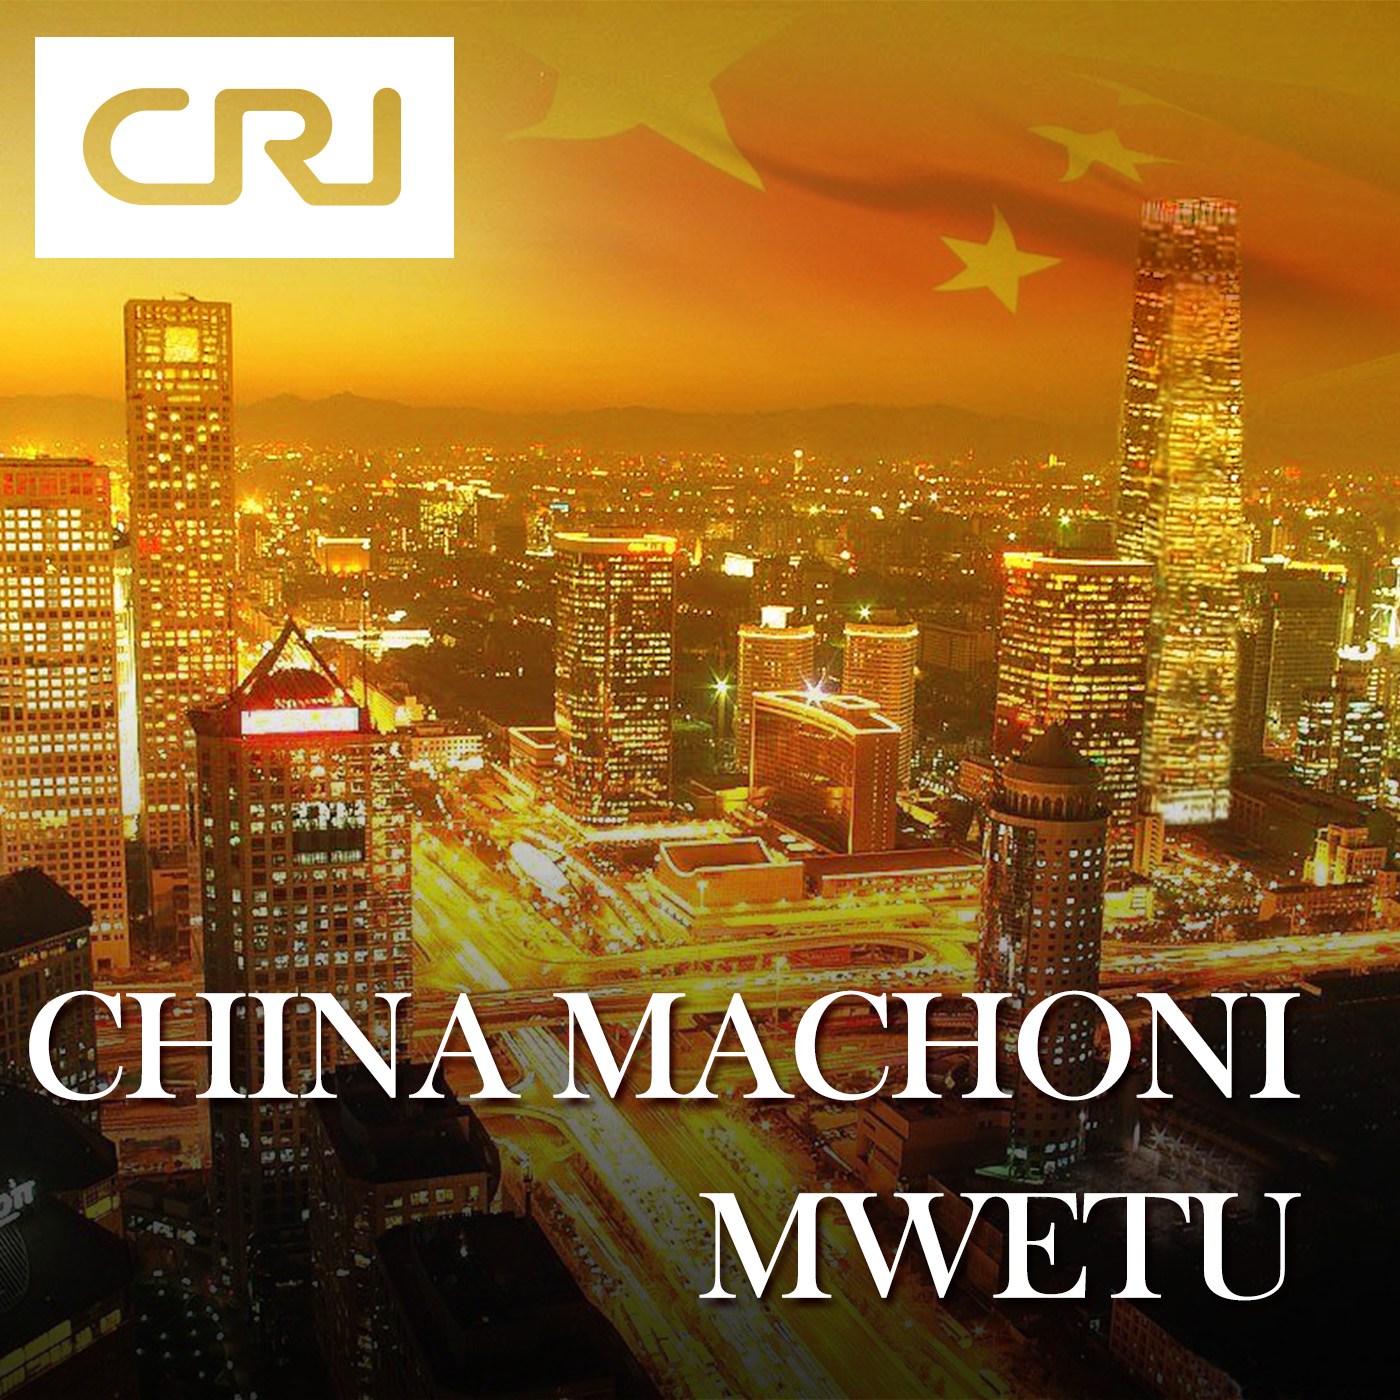 China machoni mwetu